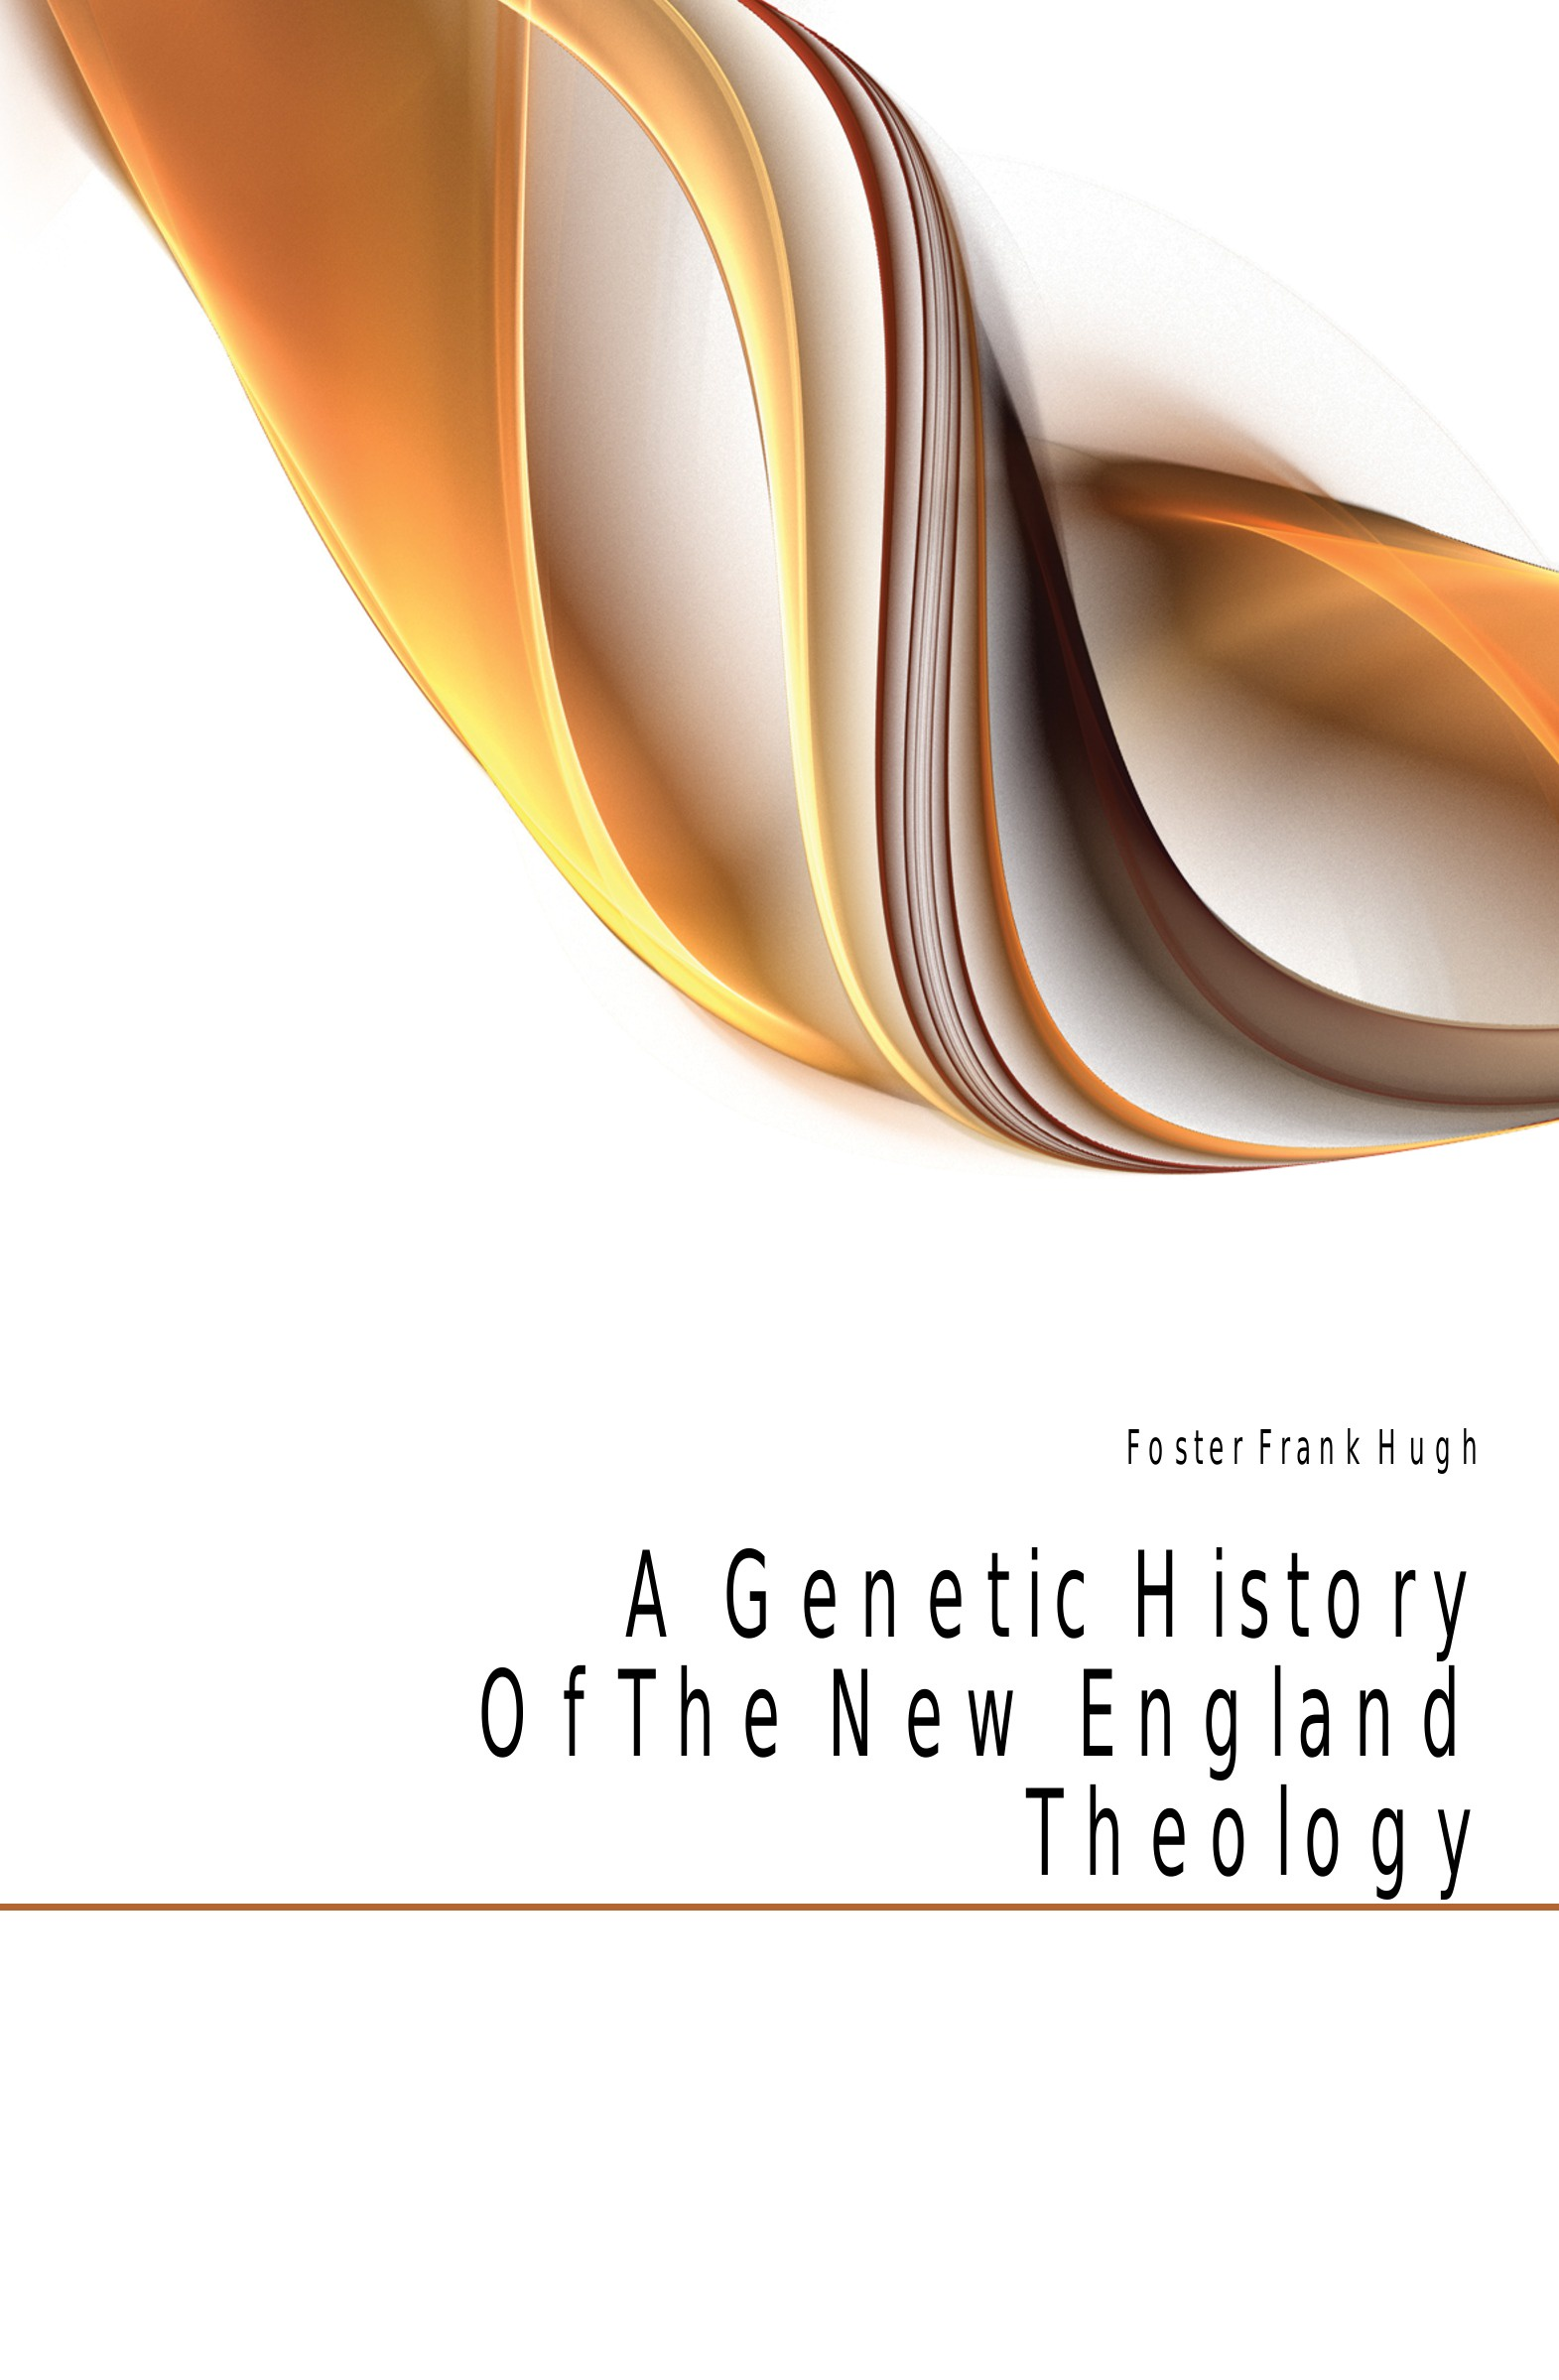 Foster Frank Hugh A Genetic History Of The New England Theology boardman george nye a history of new england theology